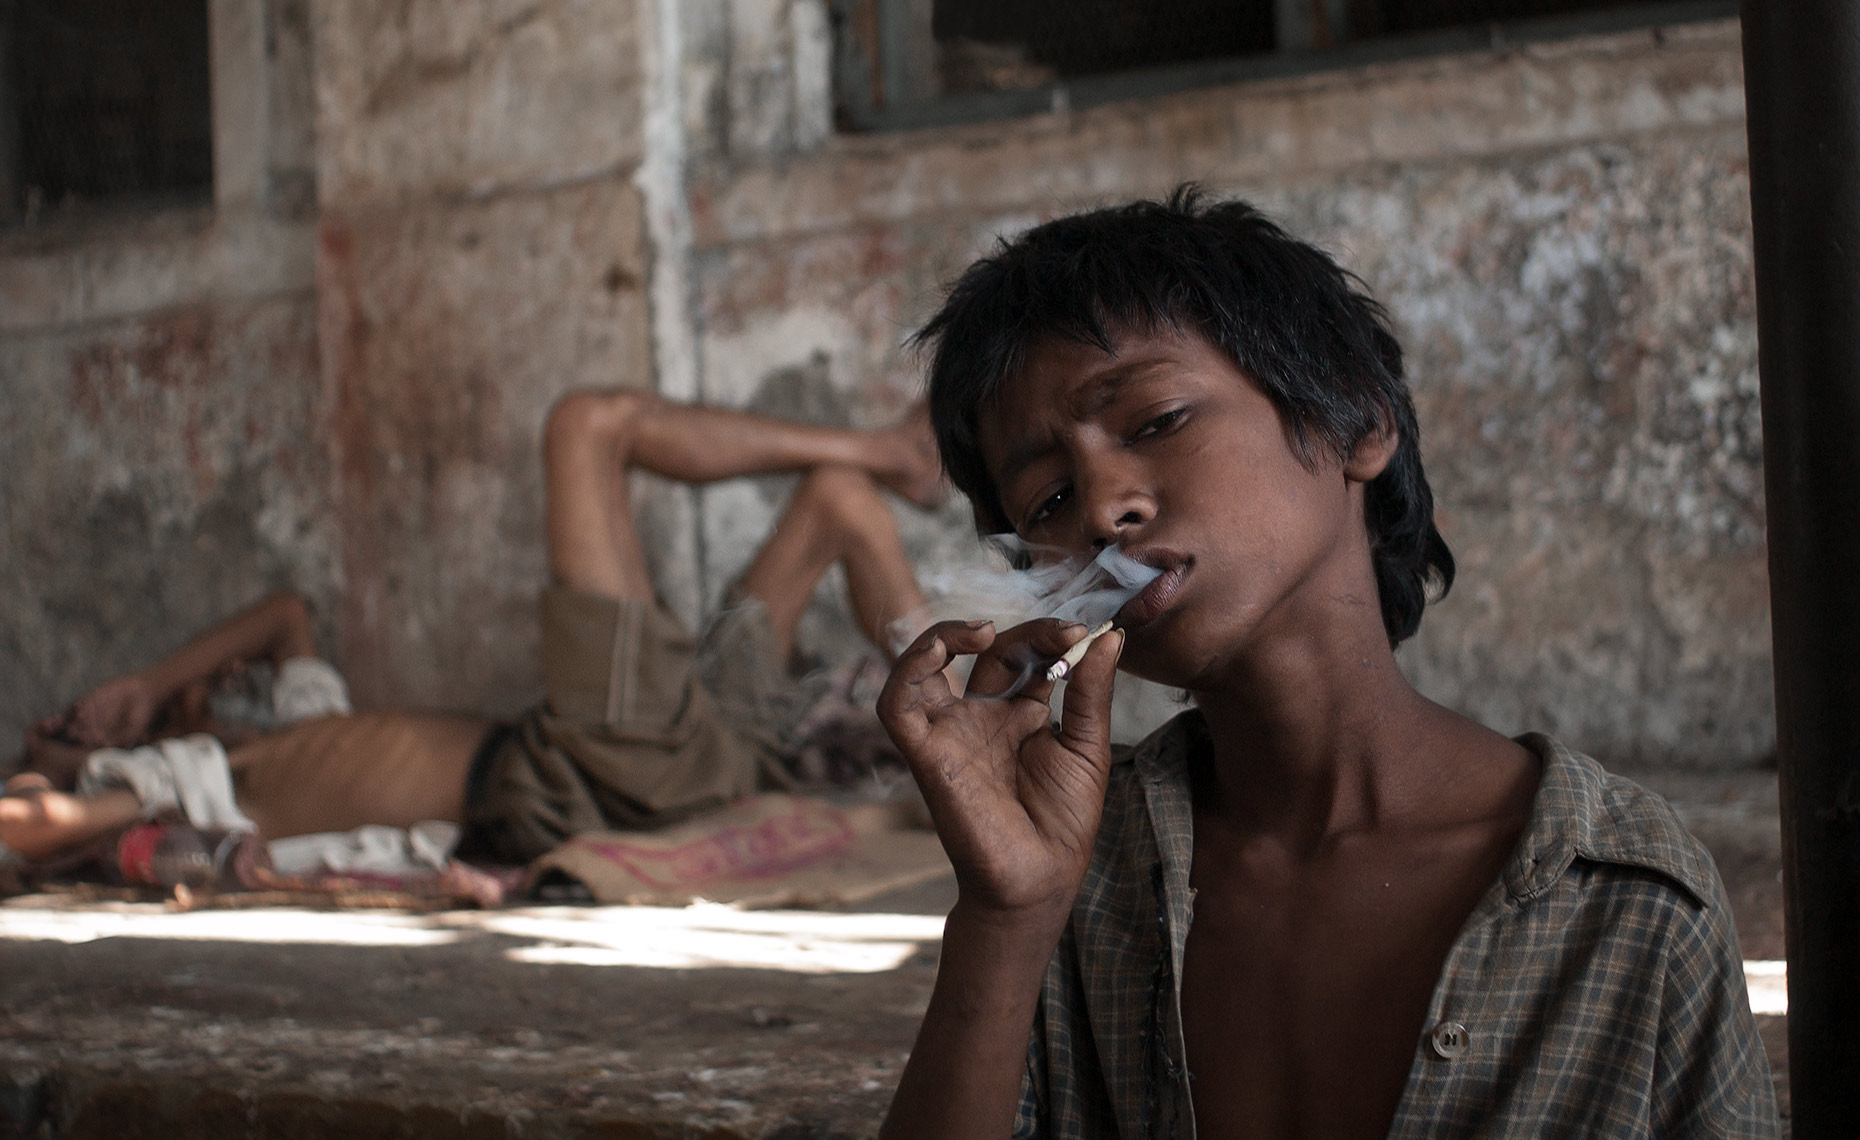 mumbai_kid_smoking_bidi.  Photo © Konstantino Hatzisarros 2010